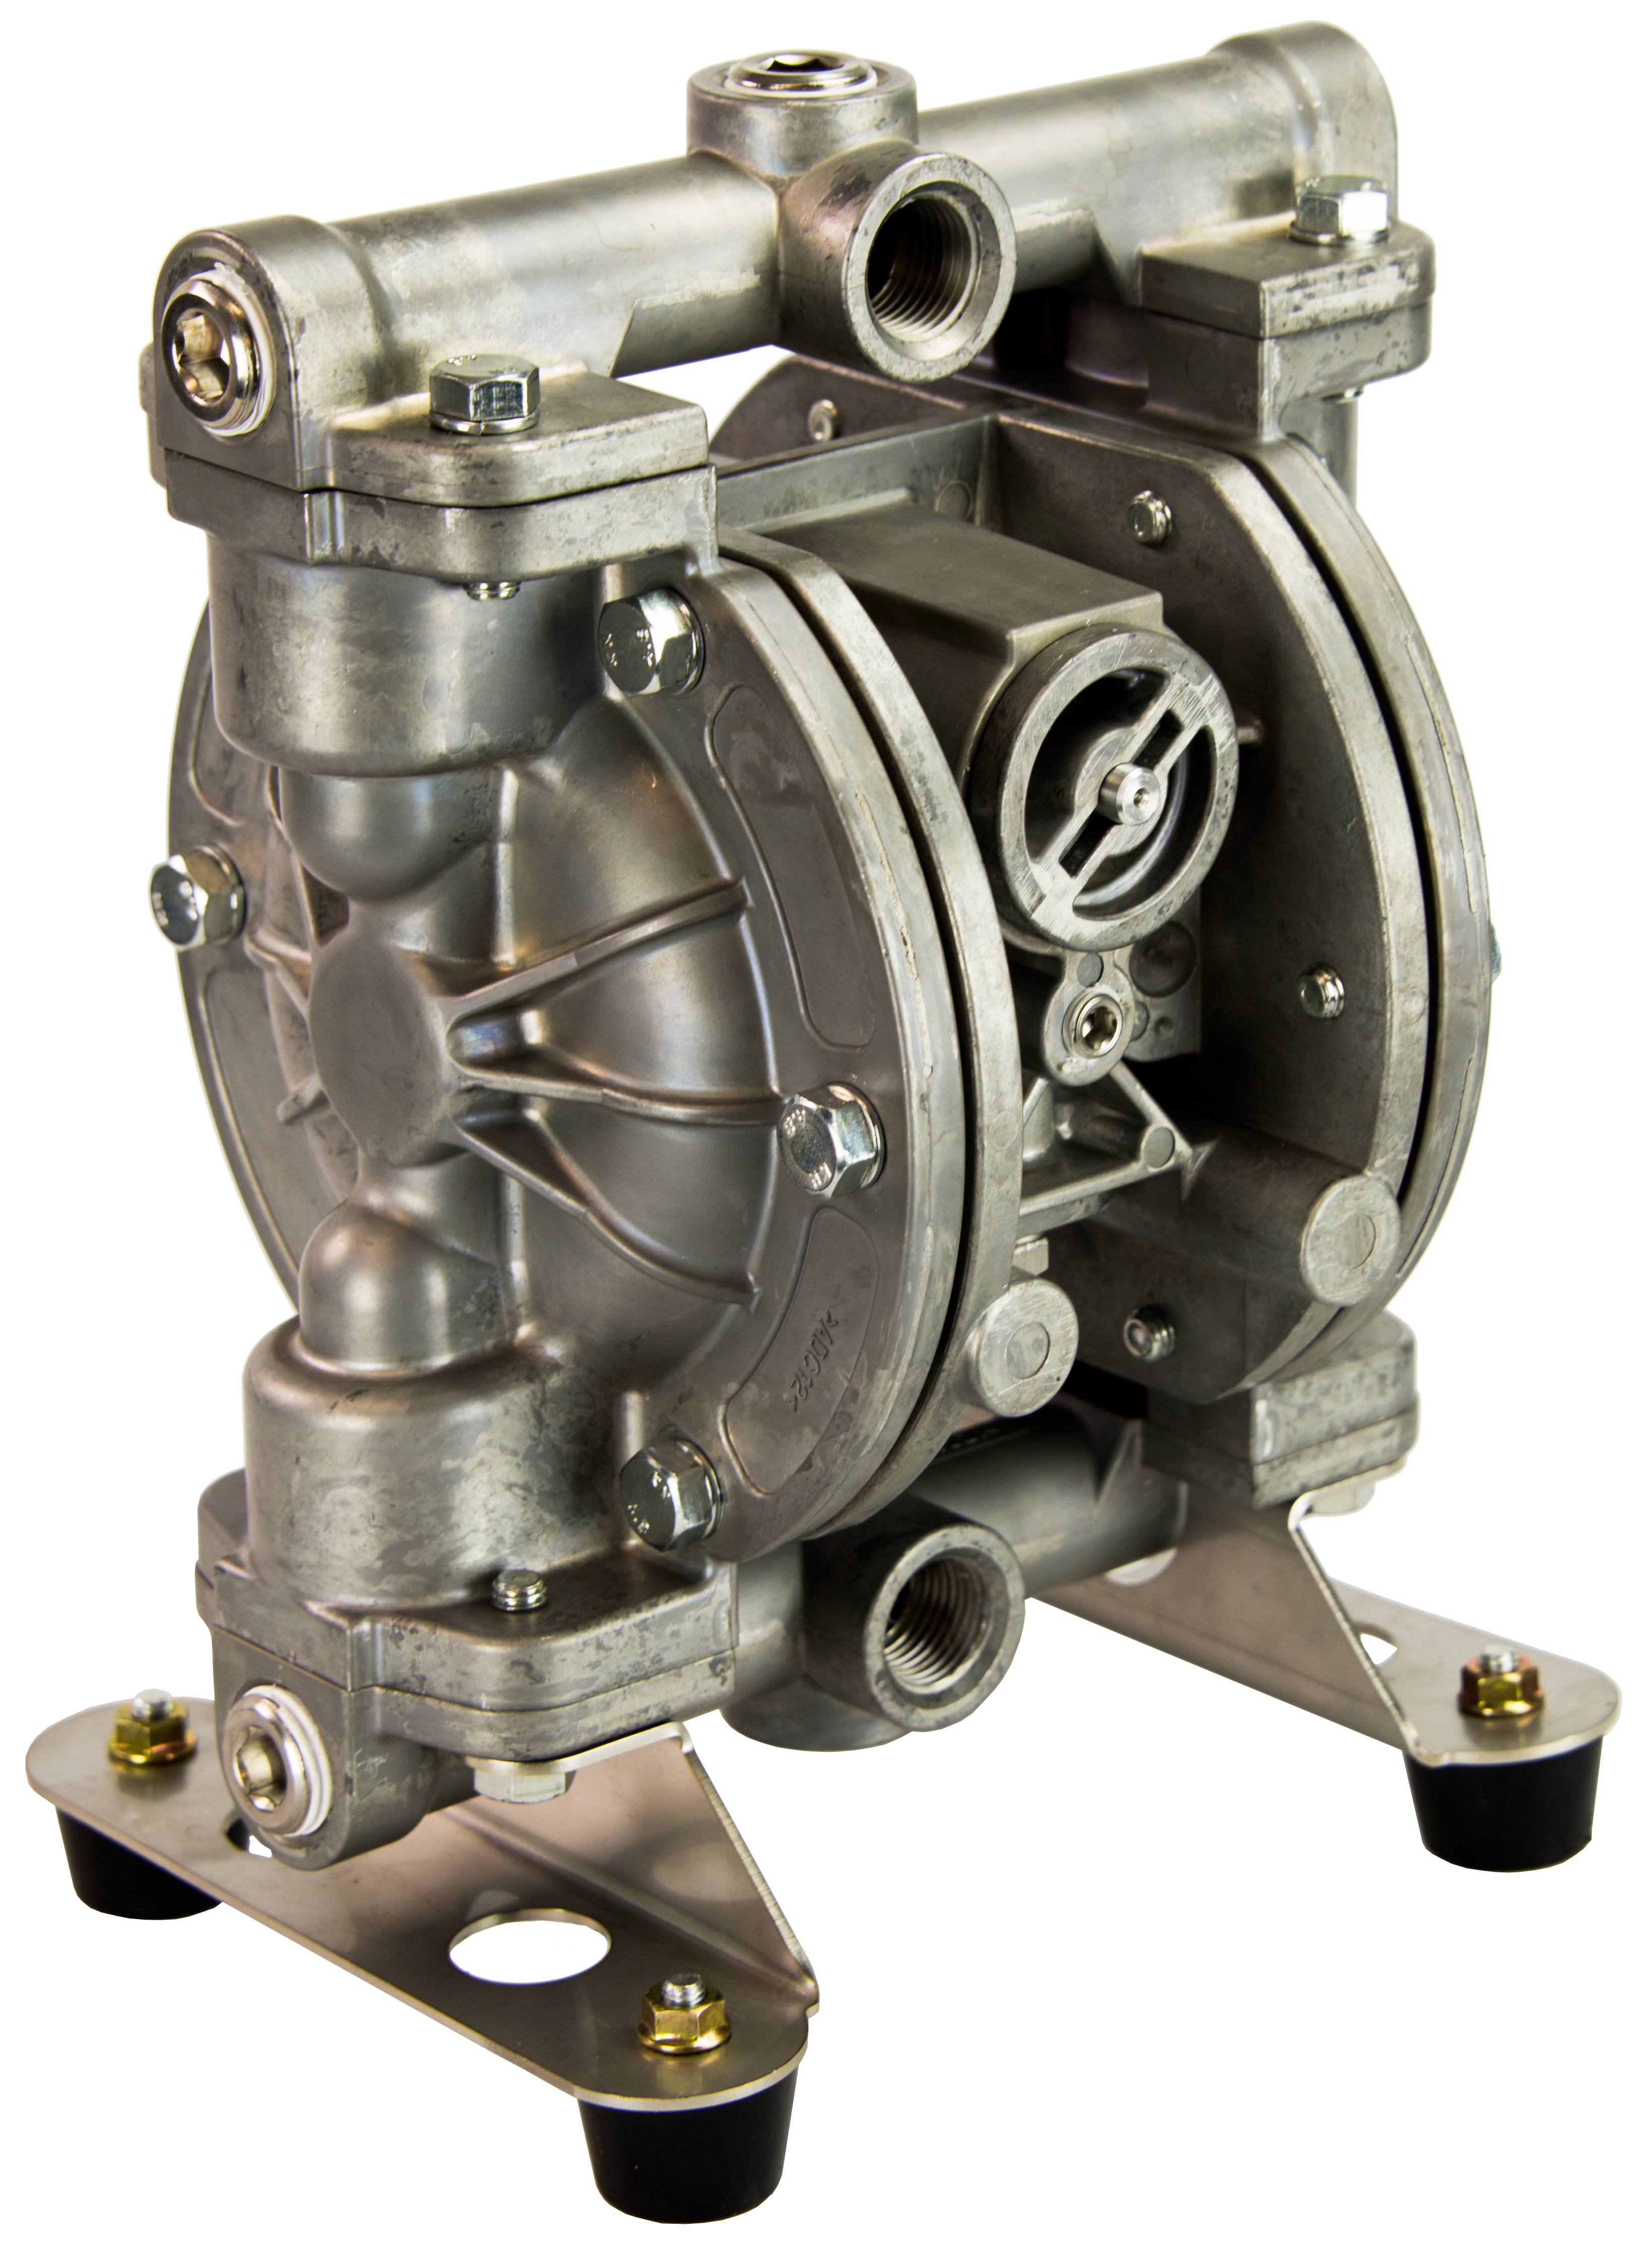 Yamada pump blog useful information on yamada pumps and pump new dp 15 metal series ccuart Gallery